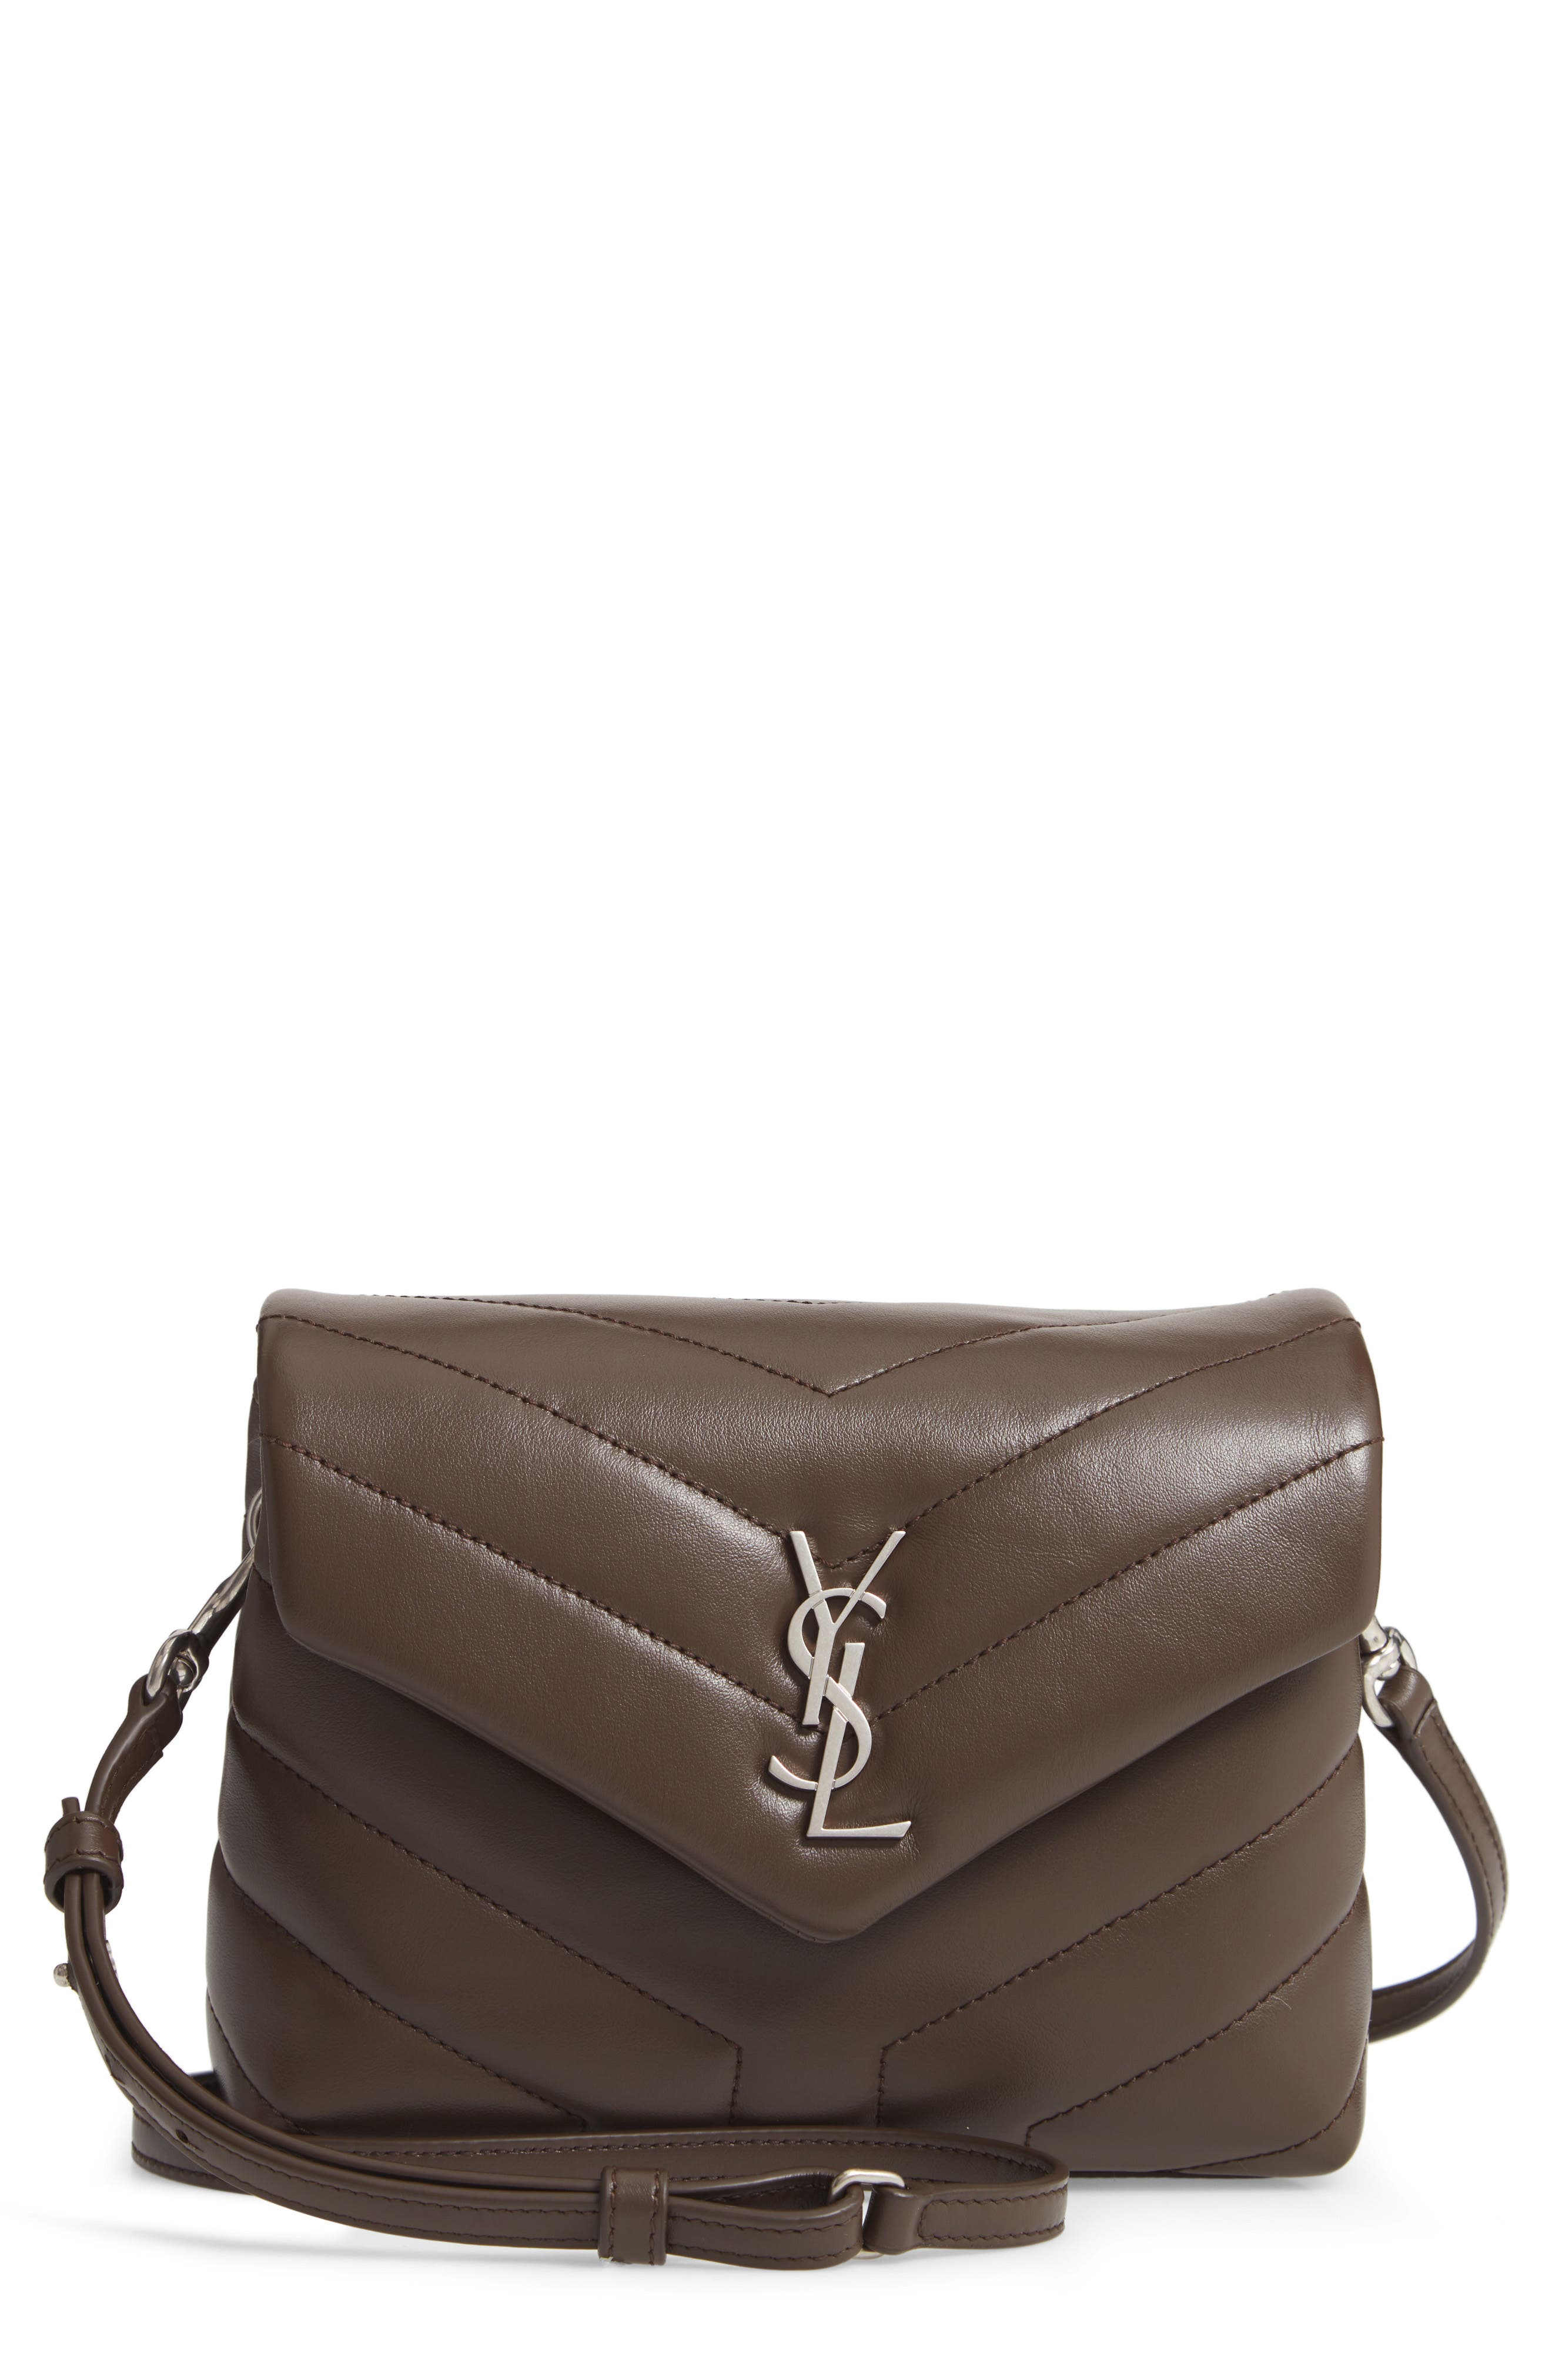 Toy Loulou Calfskin Leather Crossbody Bag in Faggio